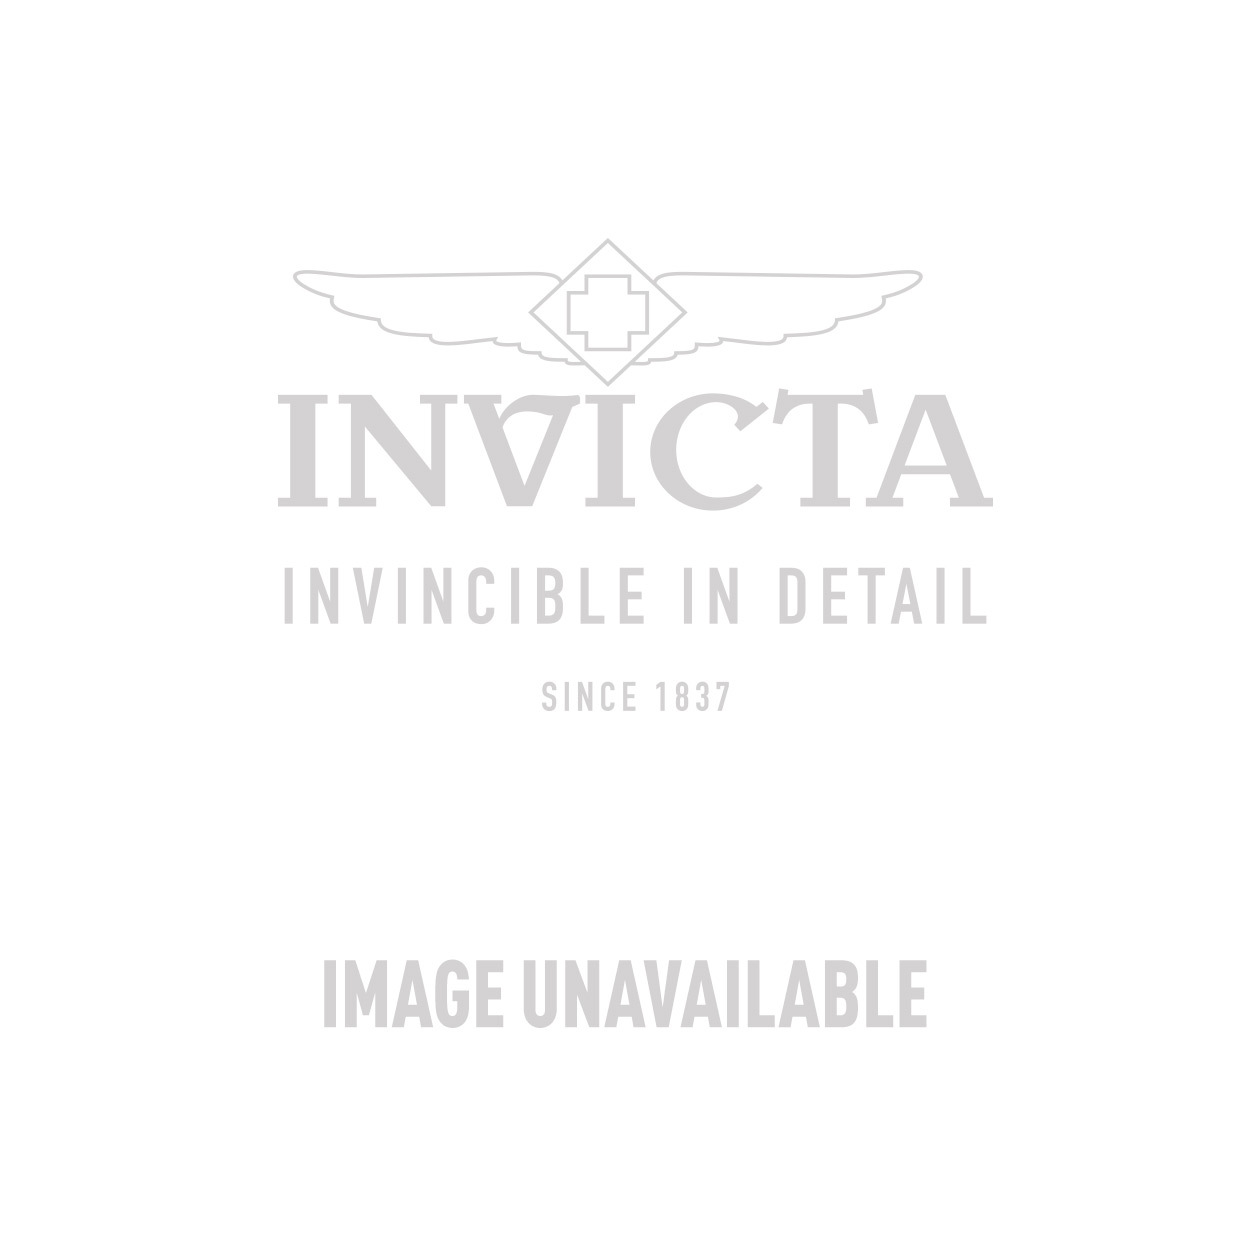 Invicta Vintage  Quartz Watch - Black, Stainless Steel case Stainless Steel band - Model 10752